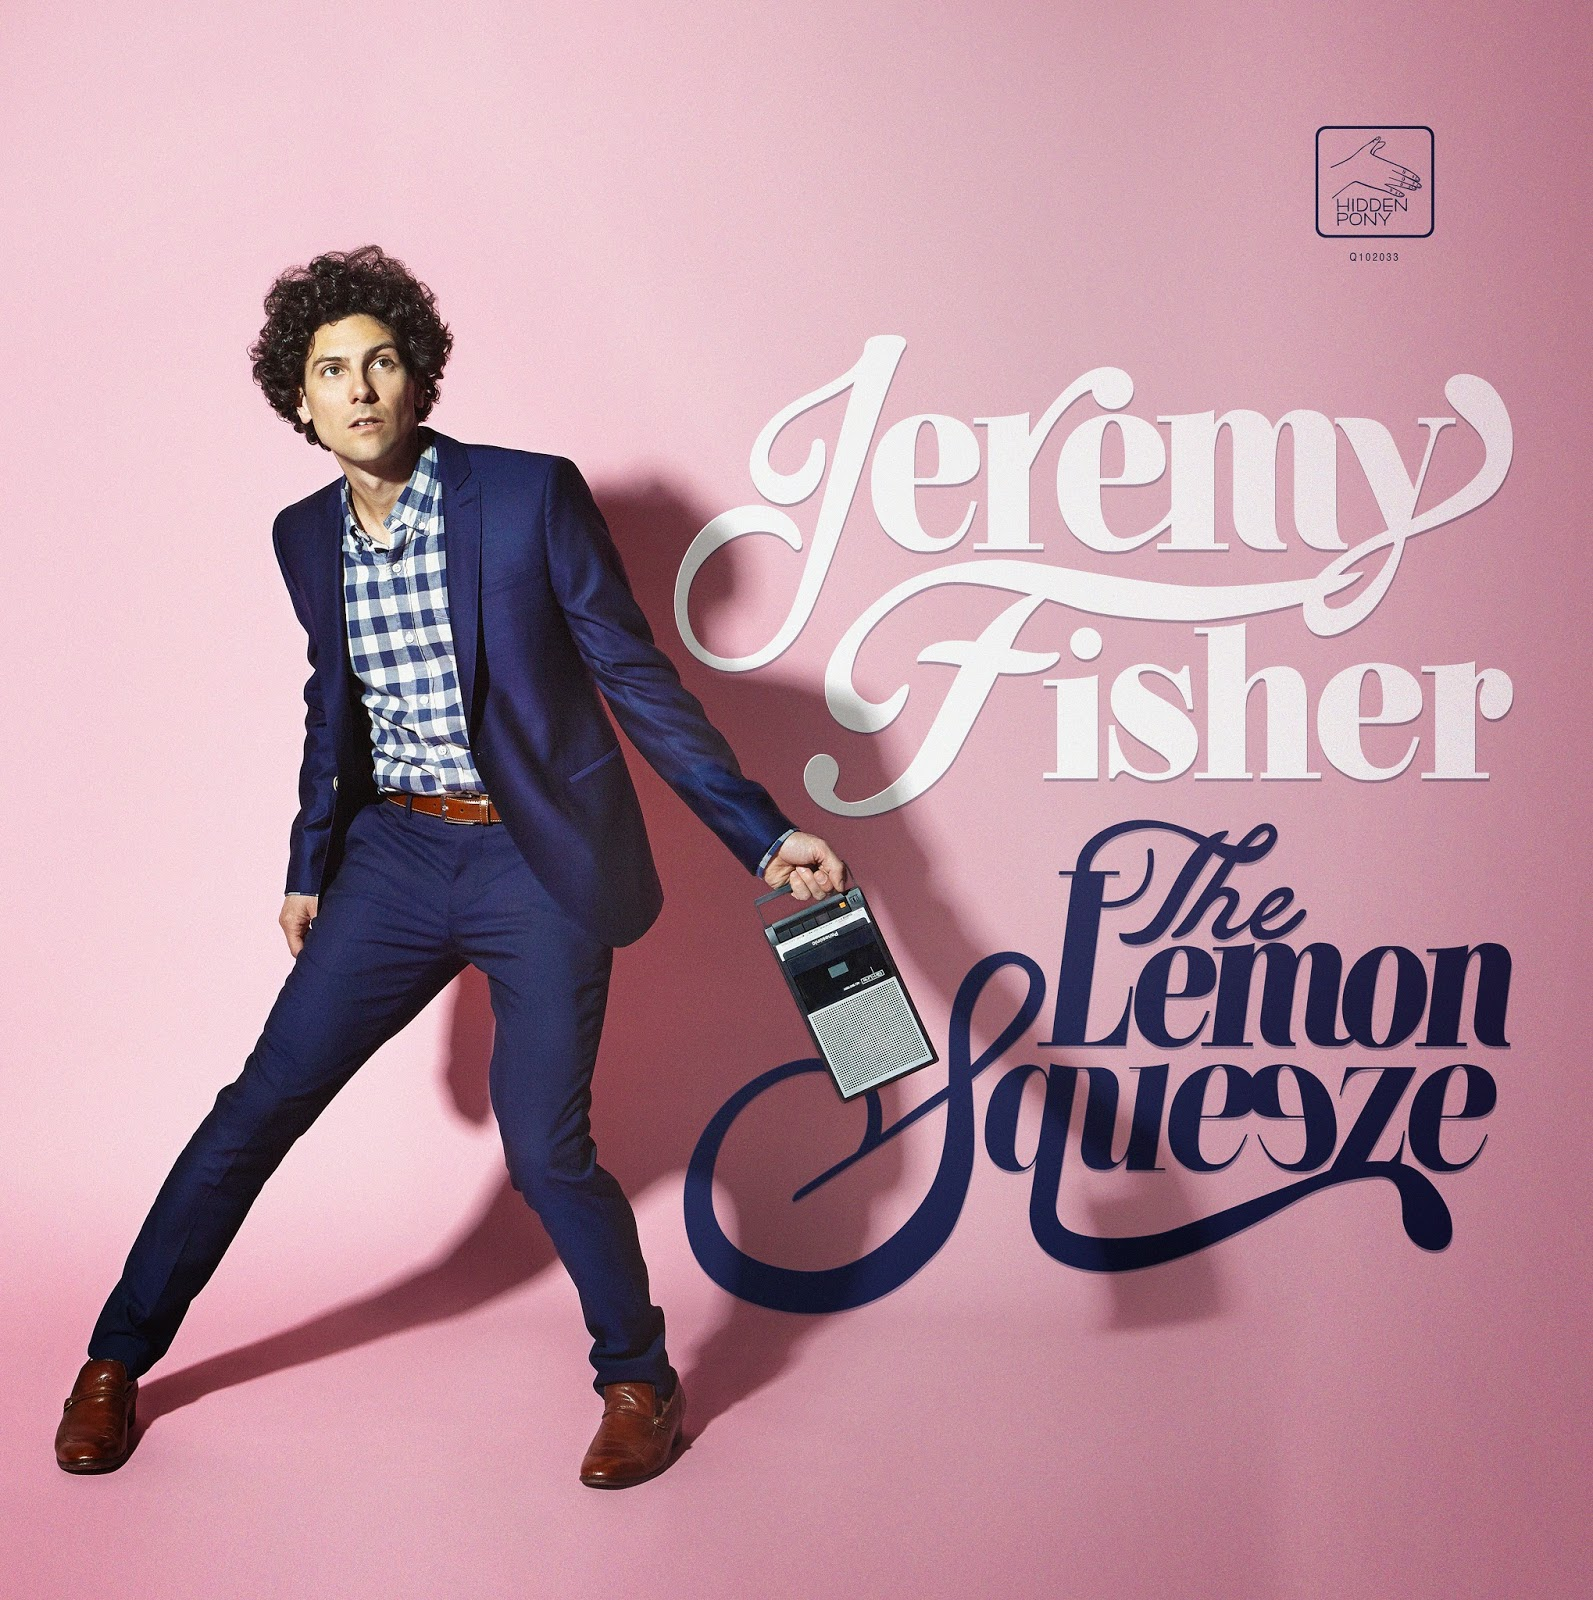 http://www.emusic.com/album/jeremy-fisher/the-lemon-squeeze/14921956/